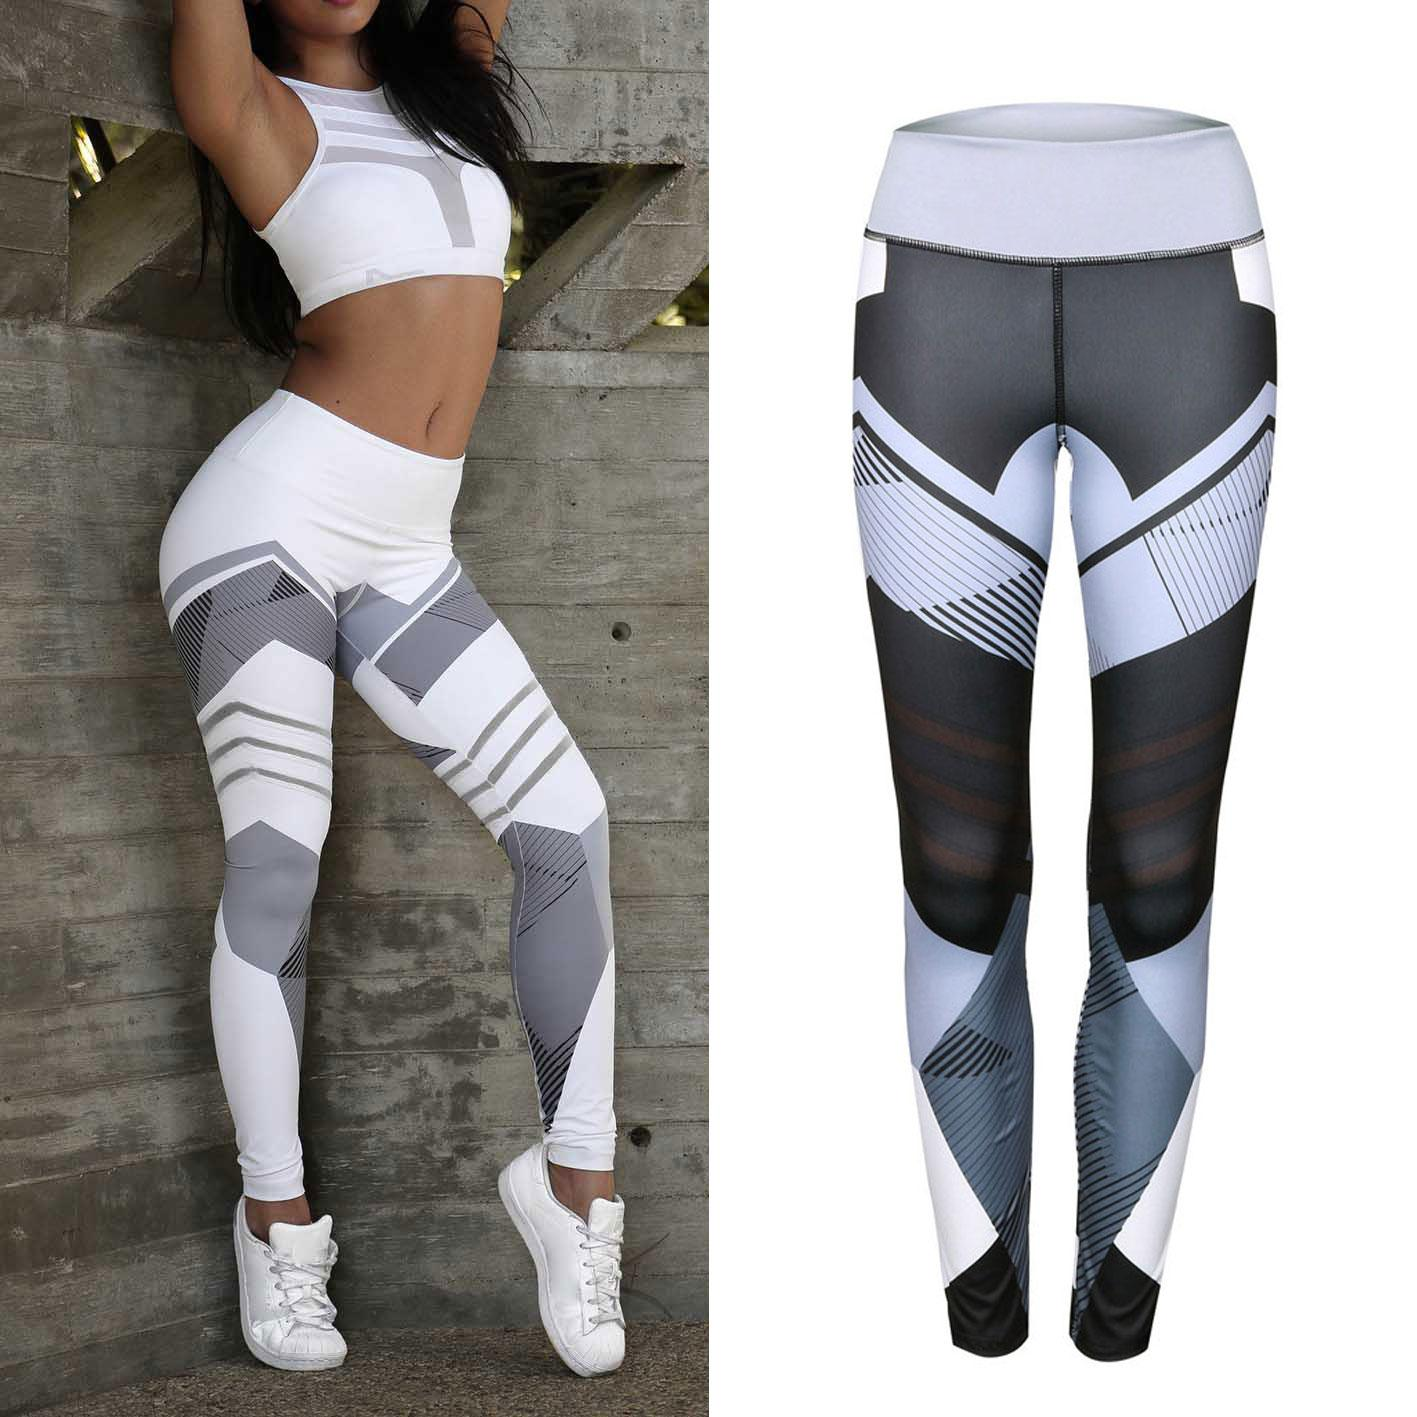 12ad047be Geometric Pattern Yoga Pants Women Fitness Trousers Leggings Breathable  Running Sexy Tights Sport Gym Leggins Athletic Workout Sportswear